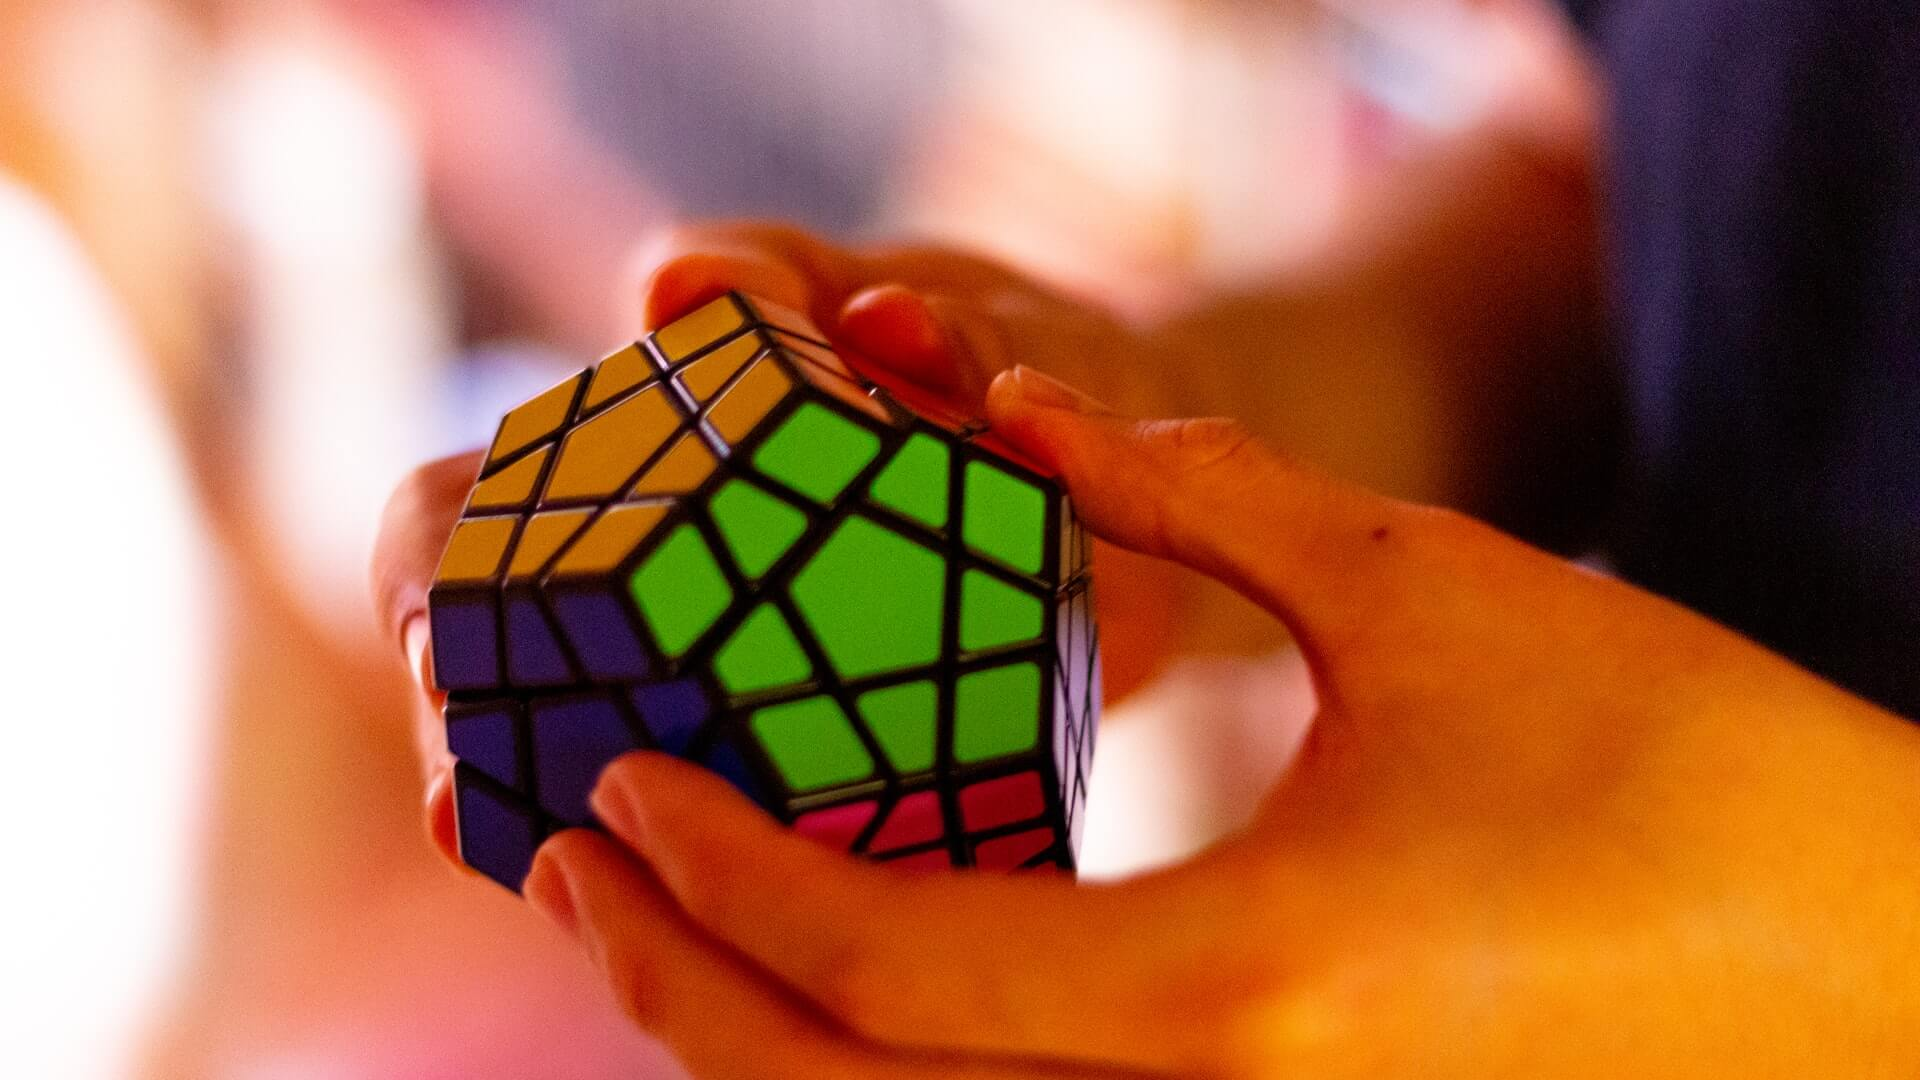 Hands holding a rubix puzzle